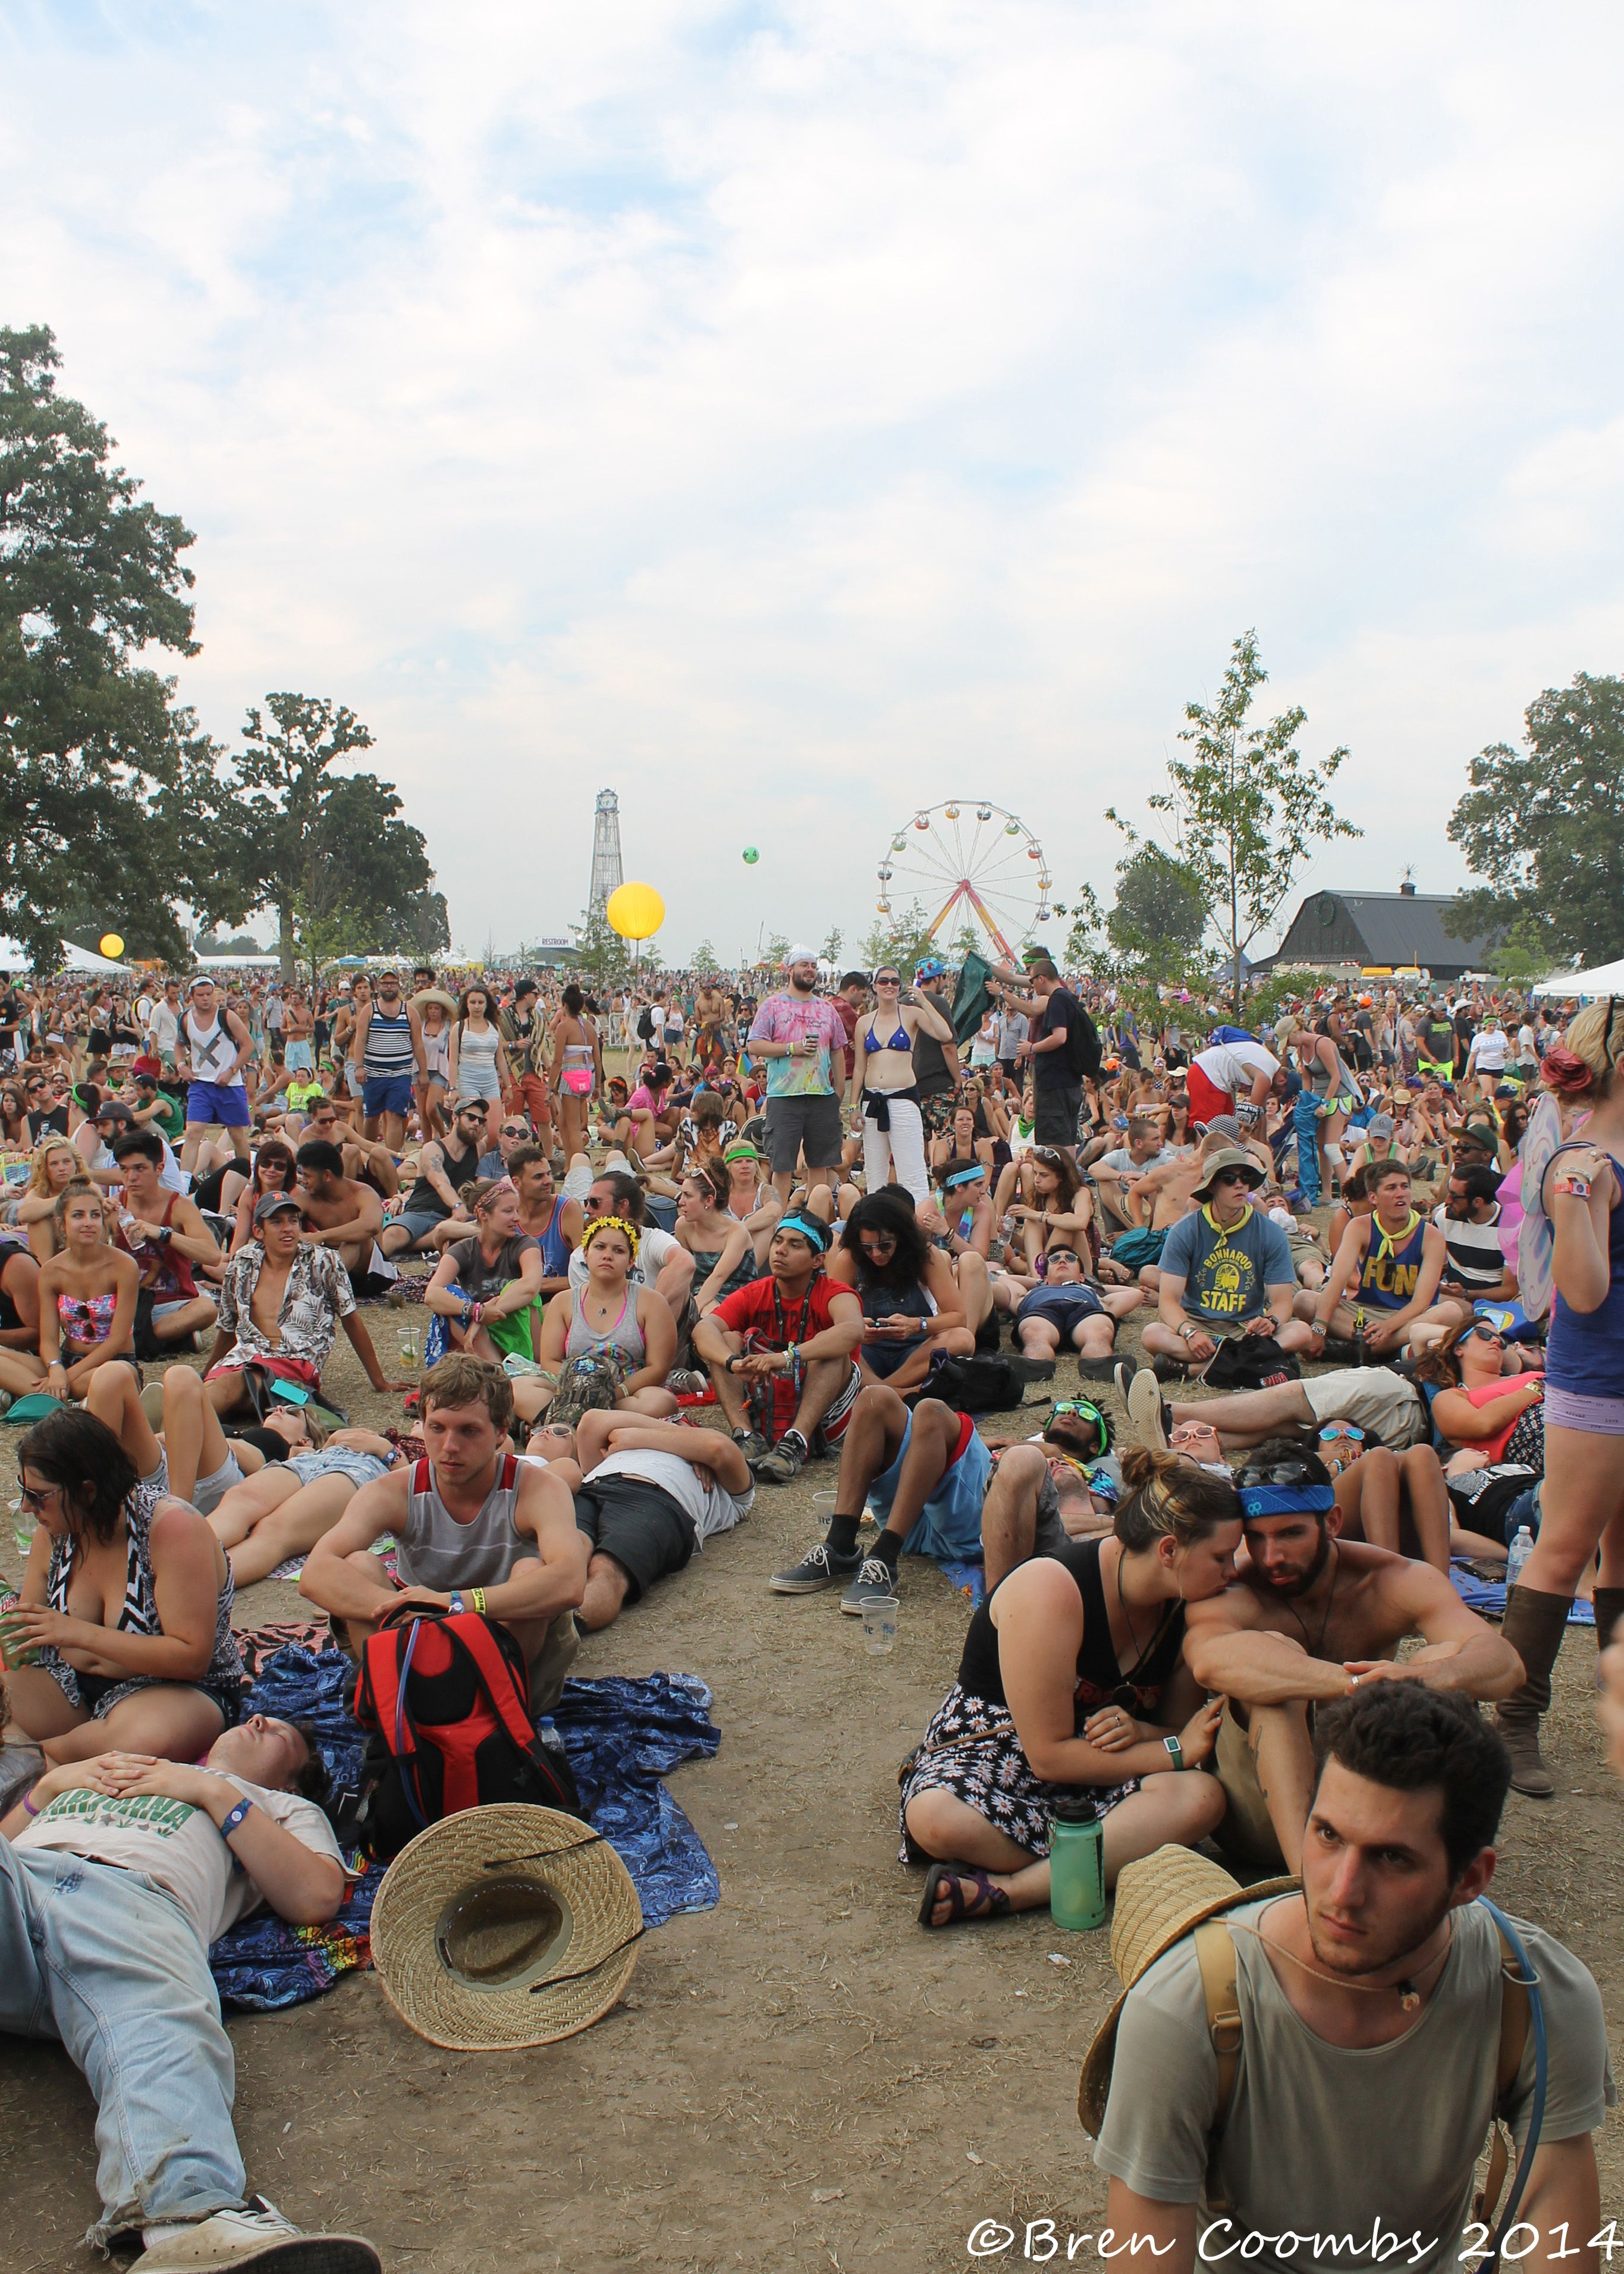 Bonnaroo crowd. ©Bren Coombs 2014